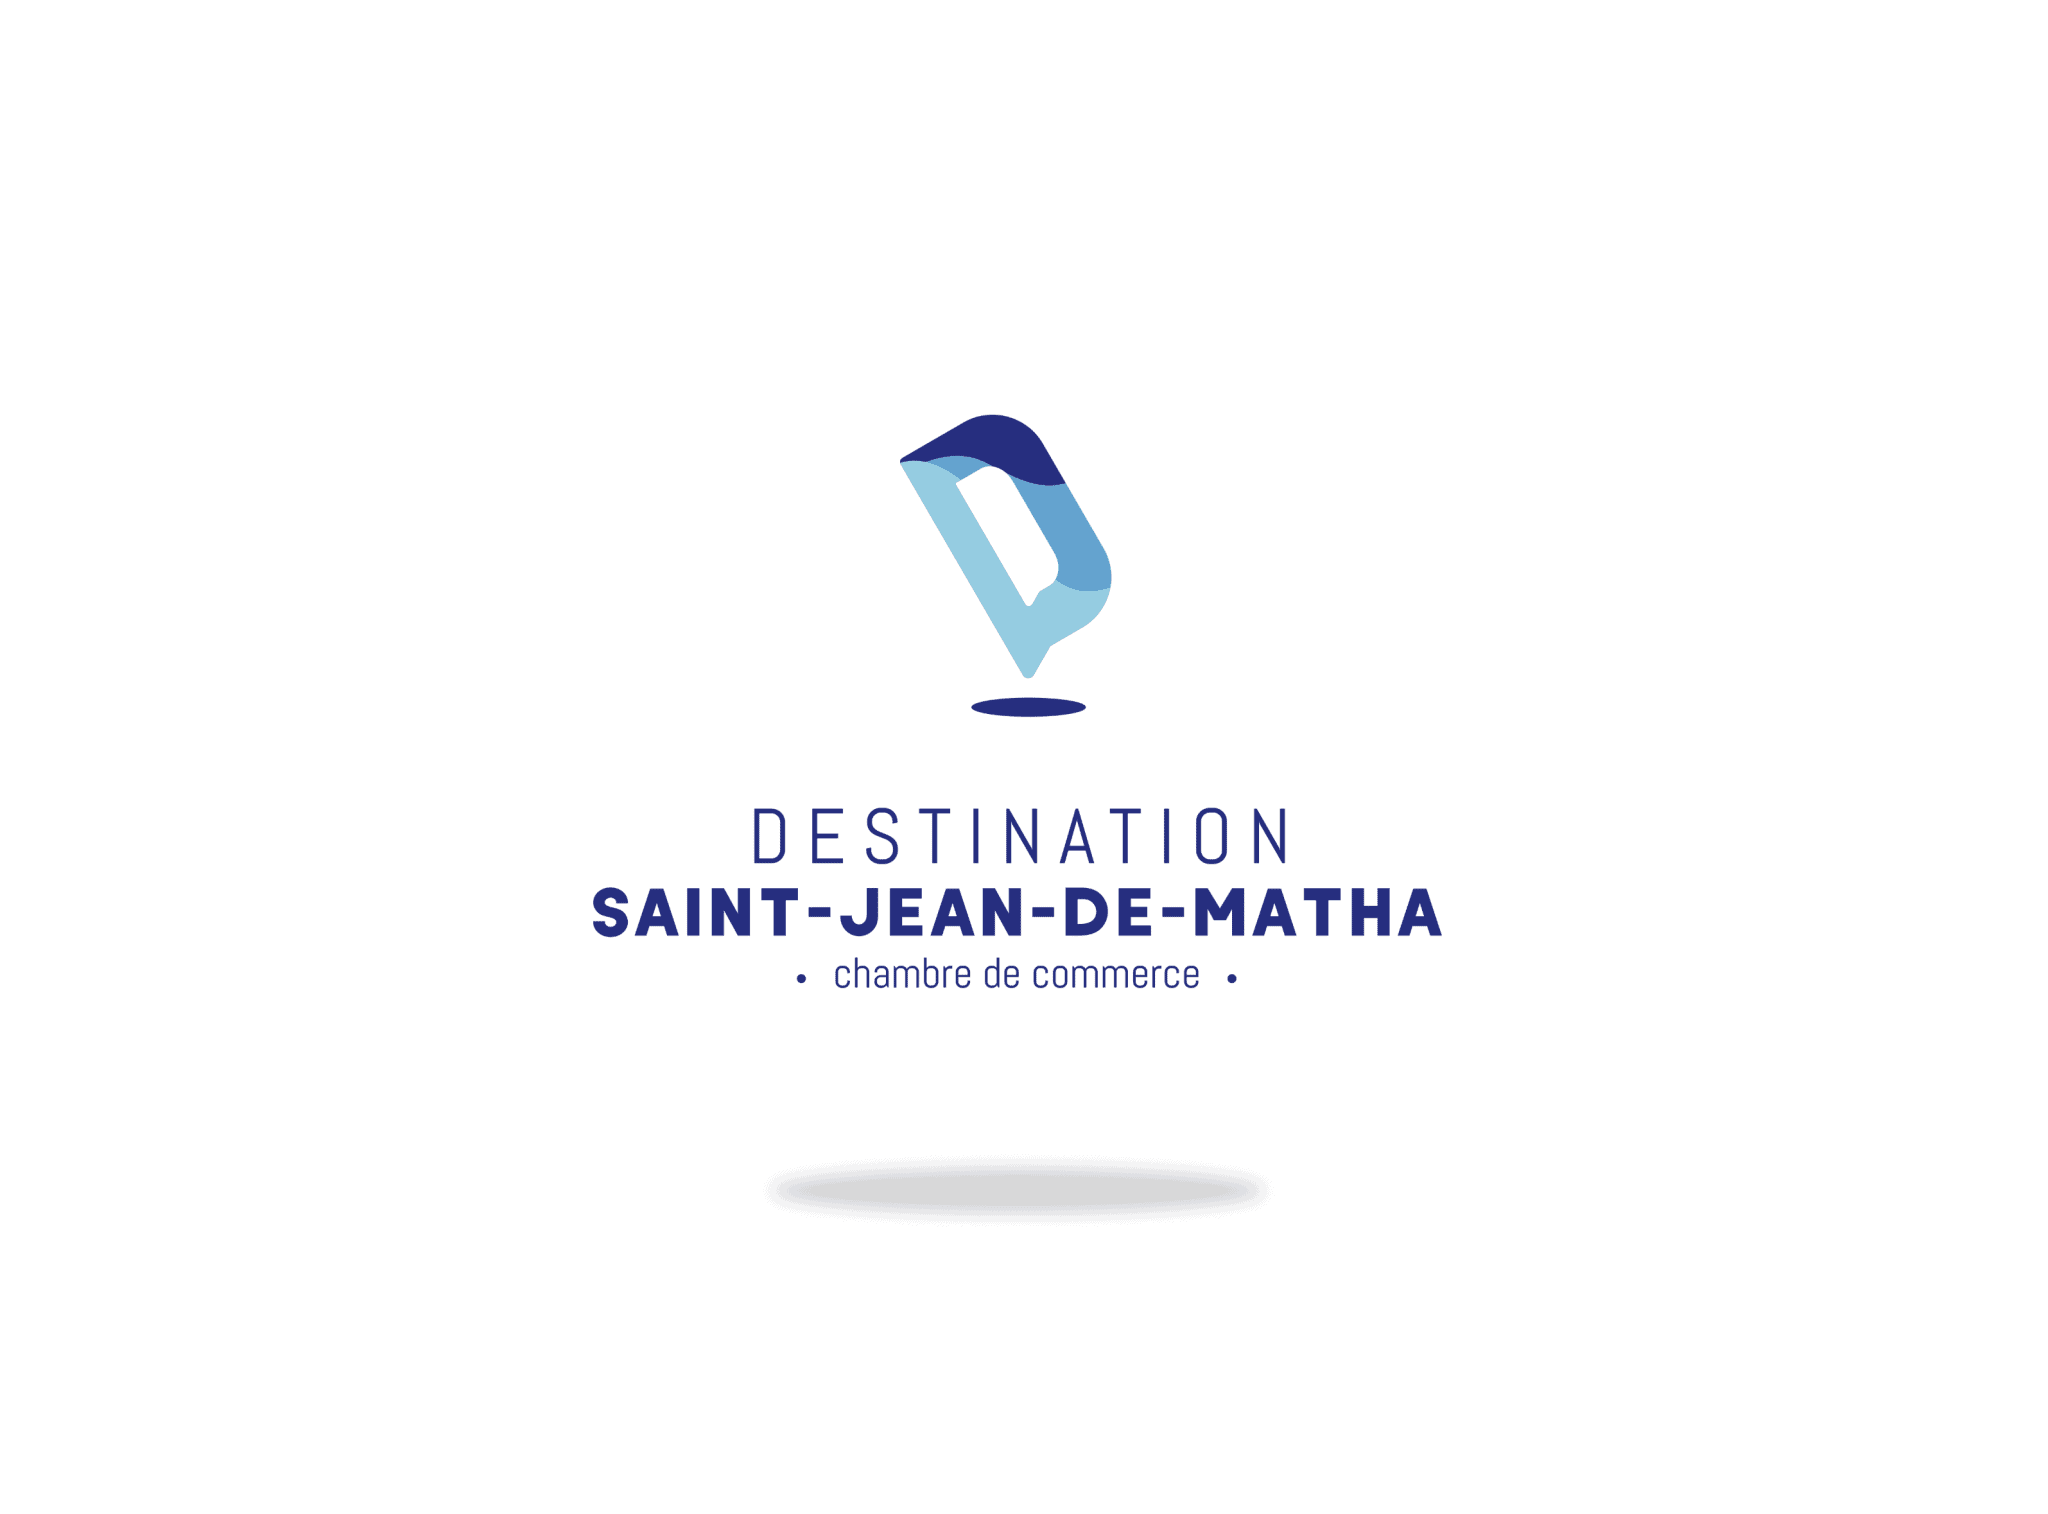 Destination Saint-Jean-De-Matha